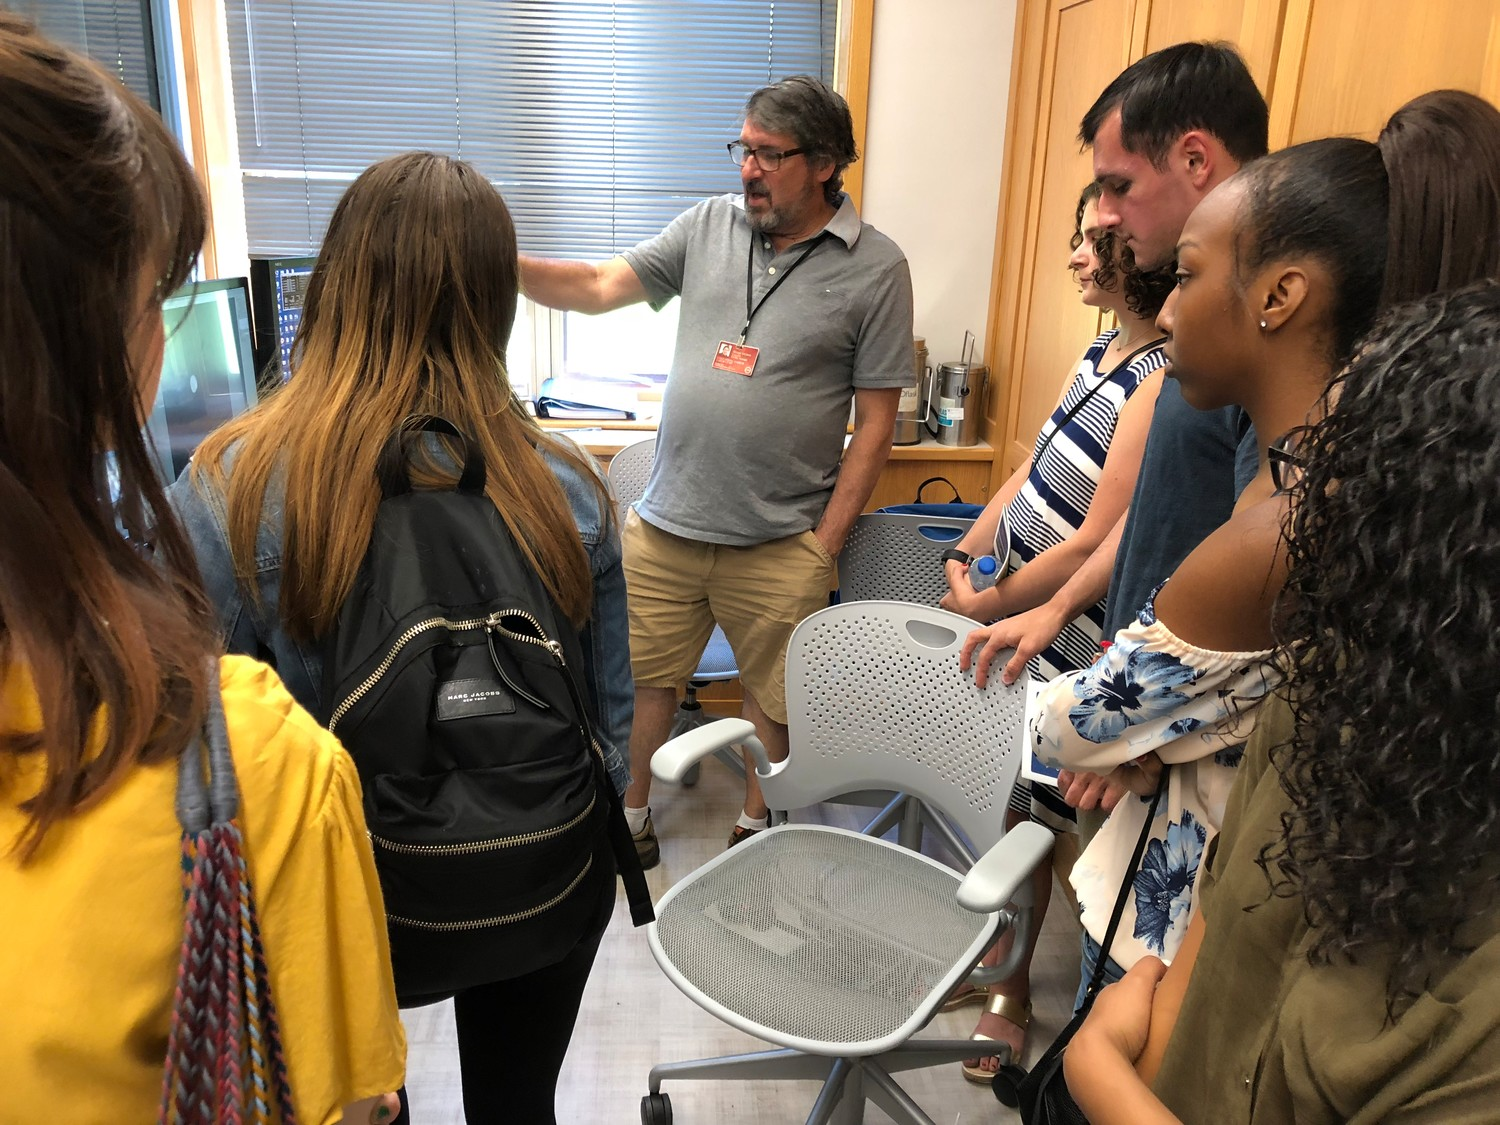 Facilities Manager Dennis Thomas showed the Herald group the control room for the cryo-electron microscope.